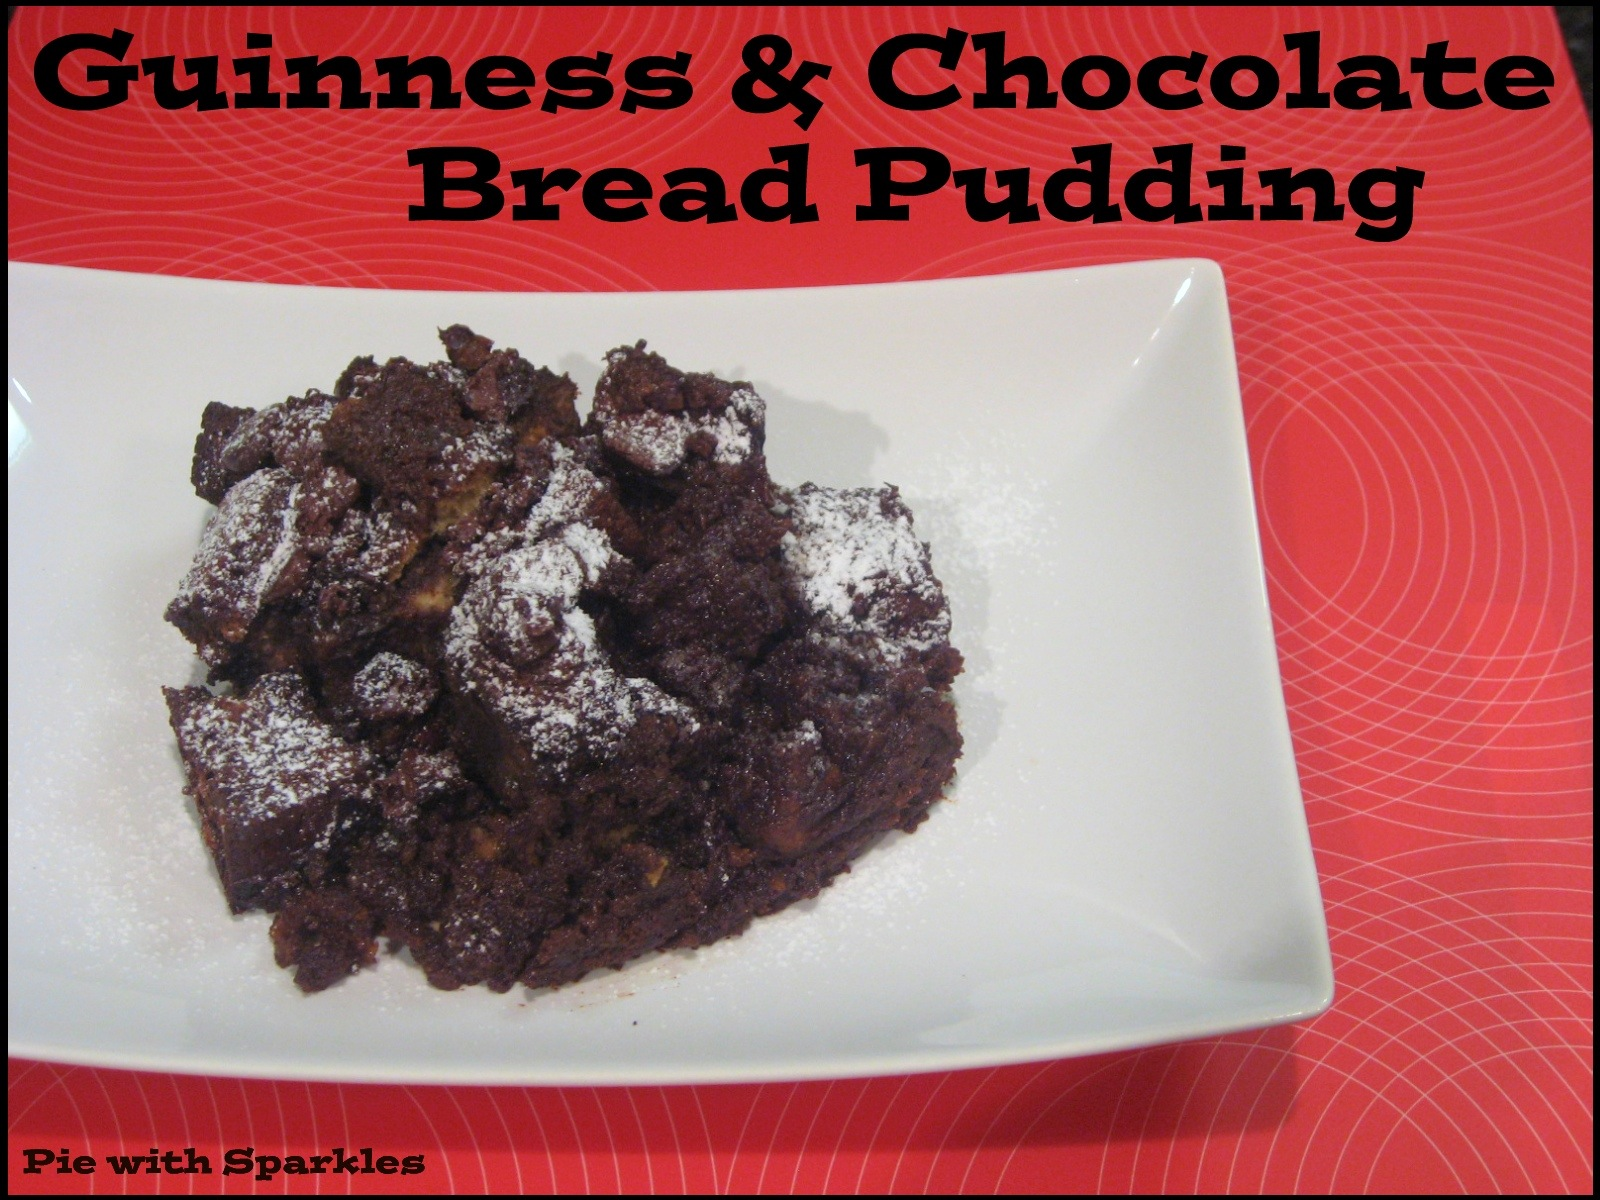 ... seriously decadent dessert: Guinness & Chocolate Bread Pudding